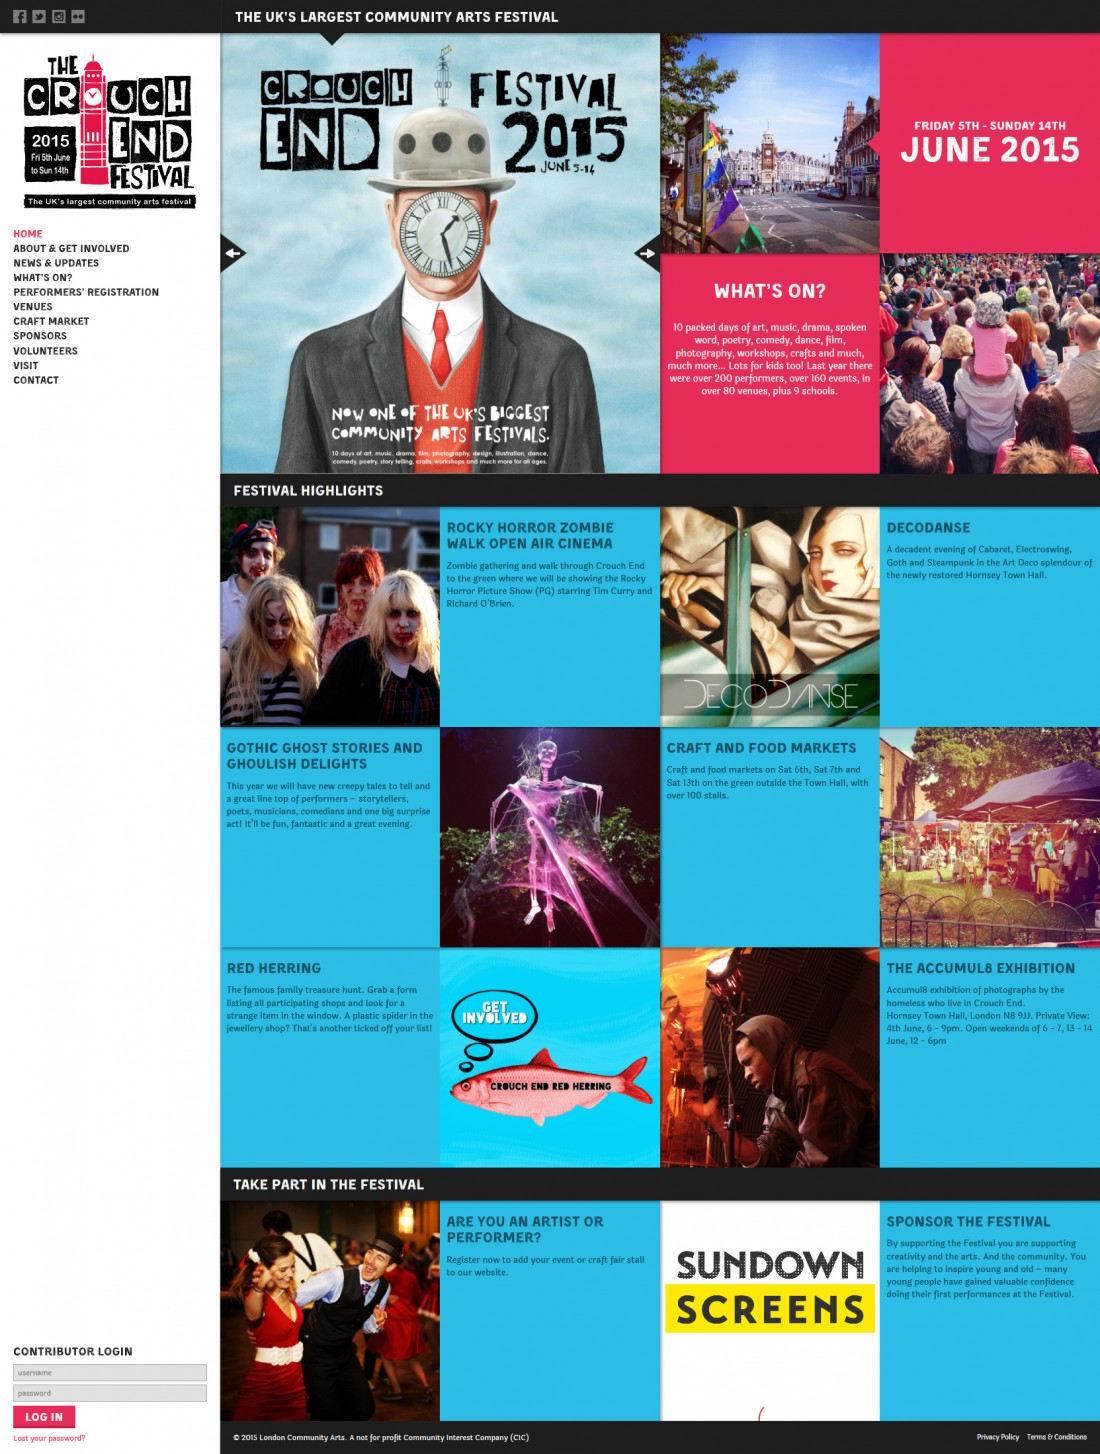 Crouch End Festival website home page